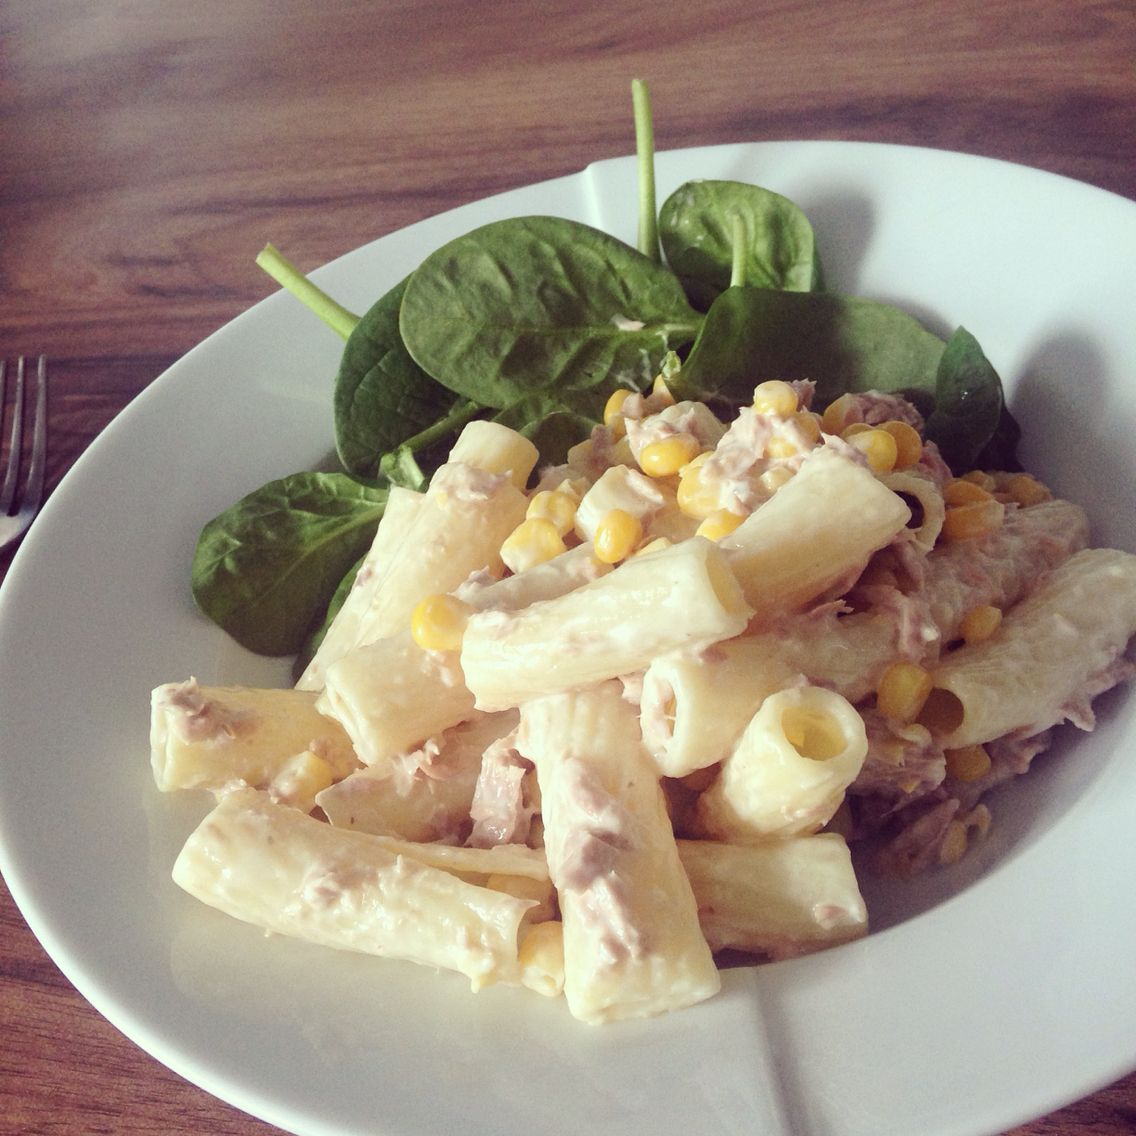 Four ingredient pasta salad - pasta, tuna, sweet corn and extra light mayo - simples :) served with spinach leaves